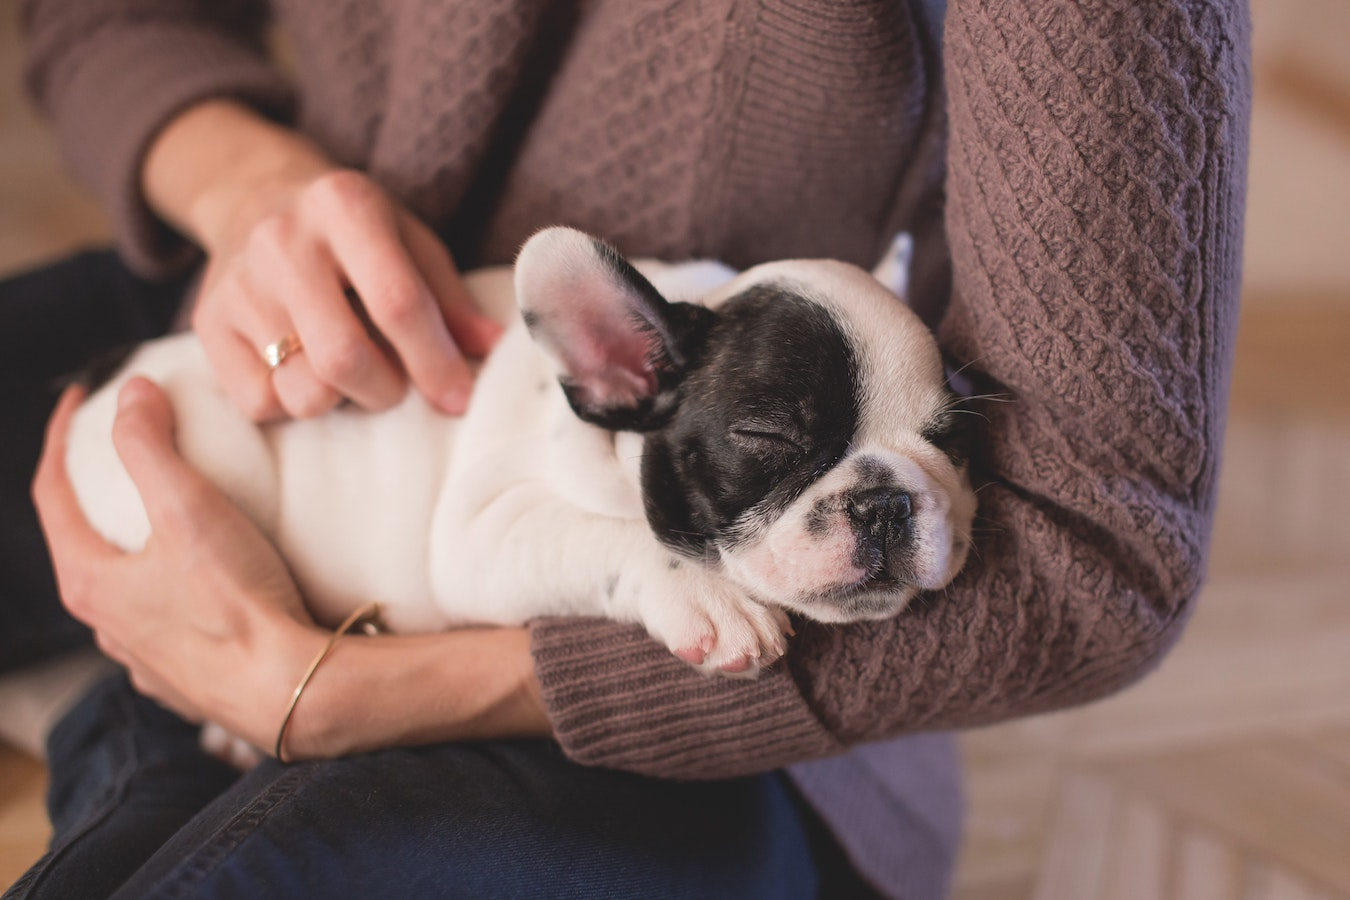 A puppy sleeping in someone's arms